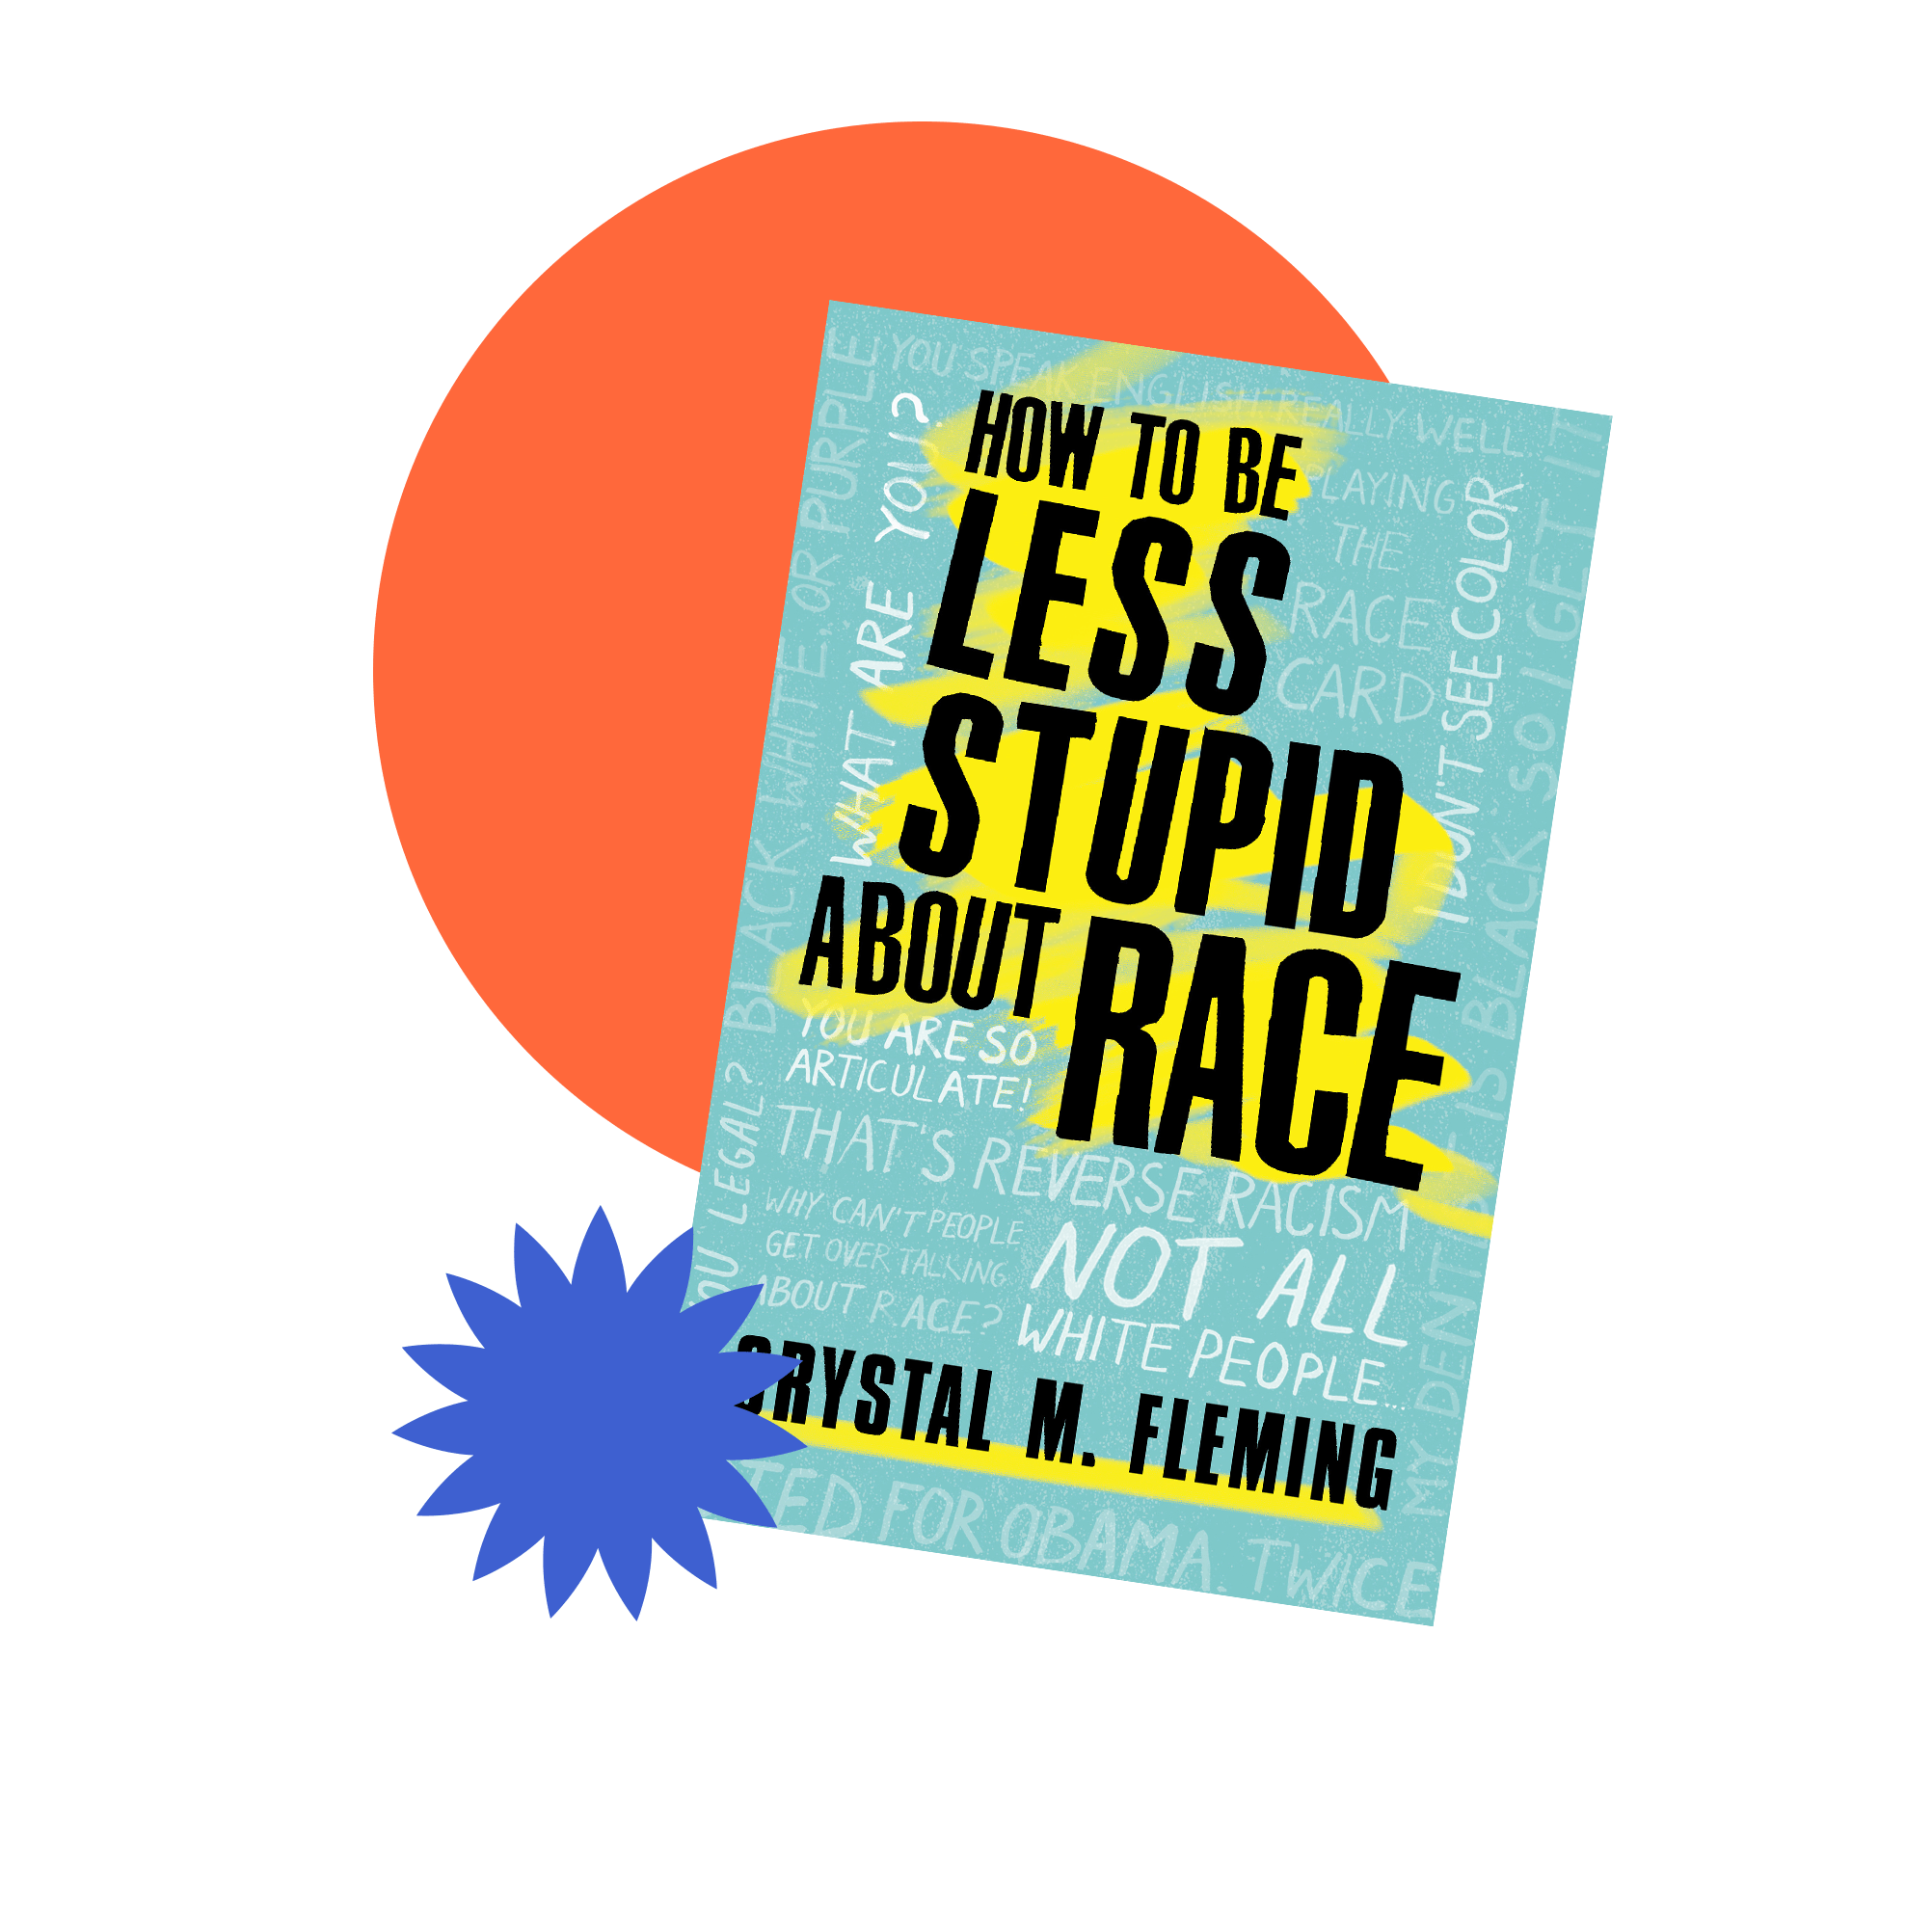 Book jacket cover for How to Be Less Stupid About Race by Crystal M. Fleming